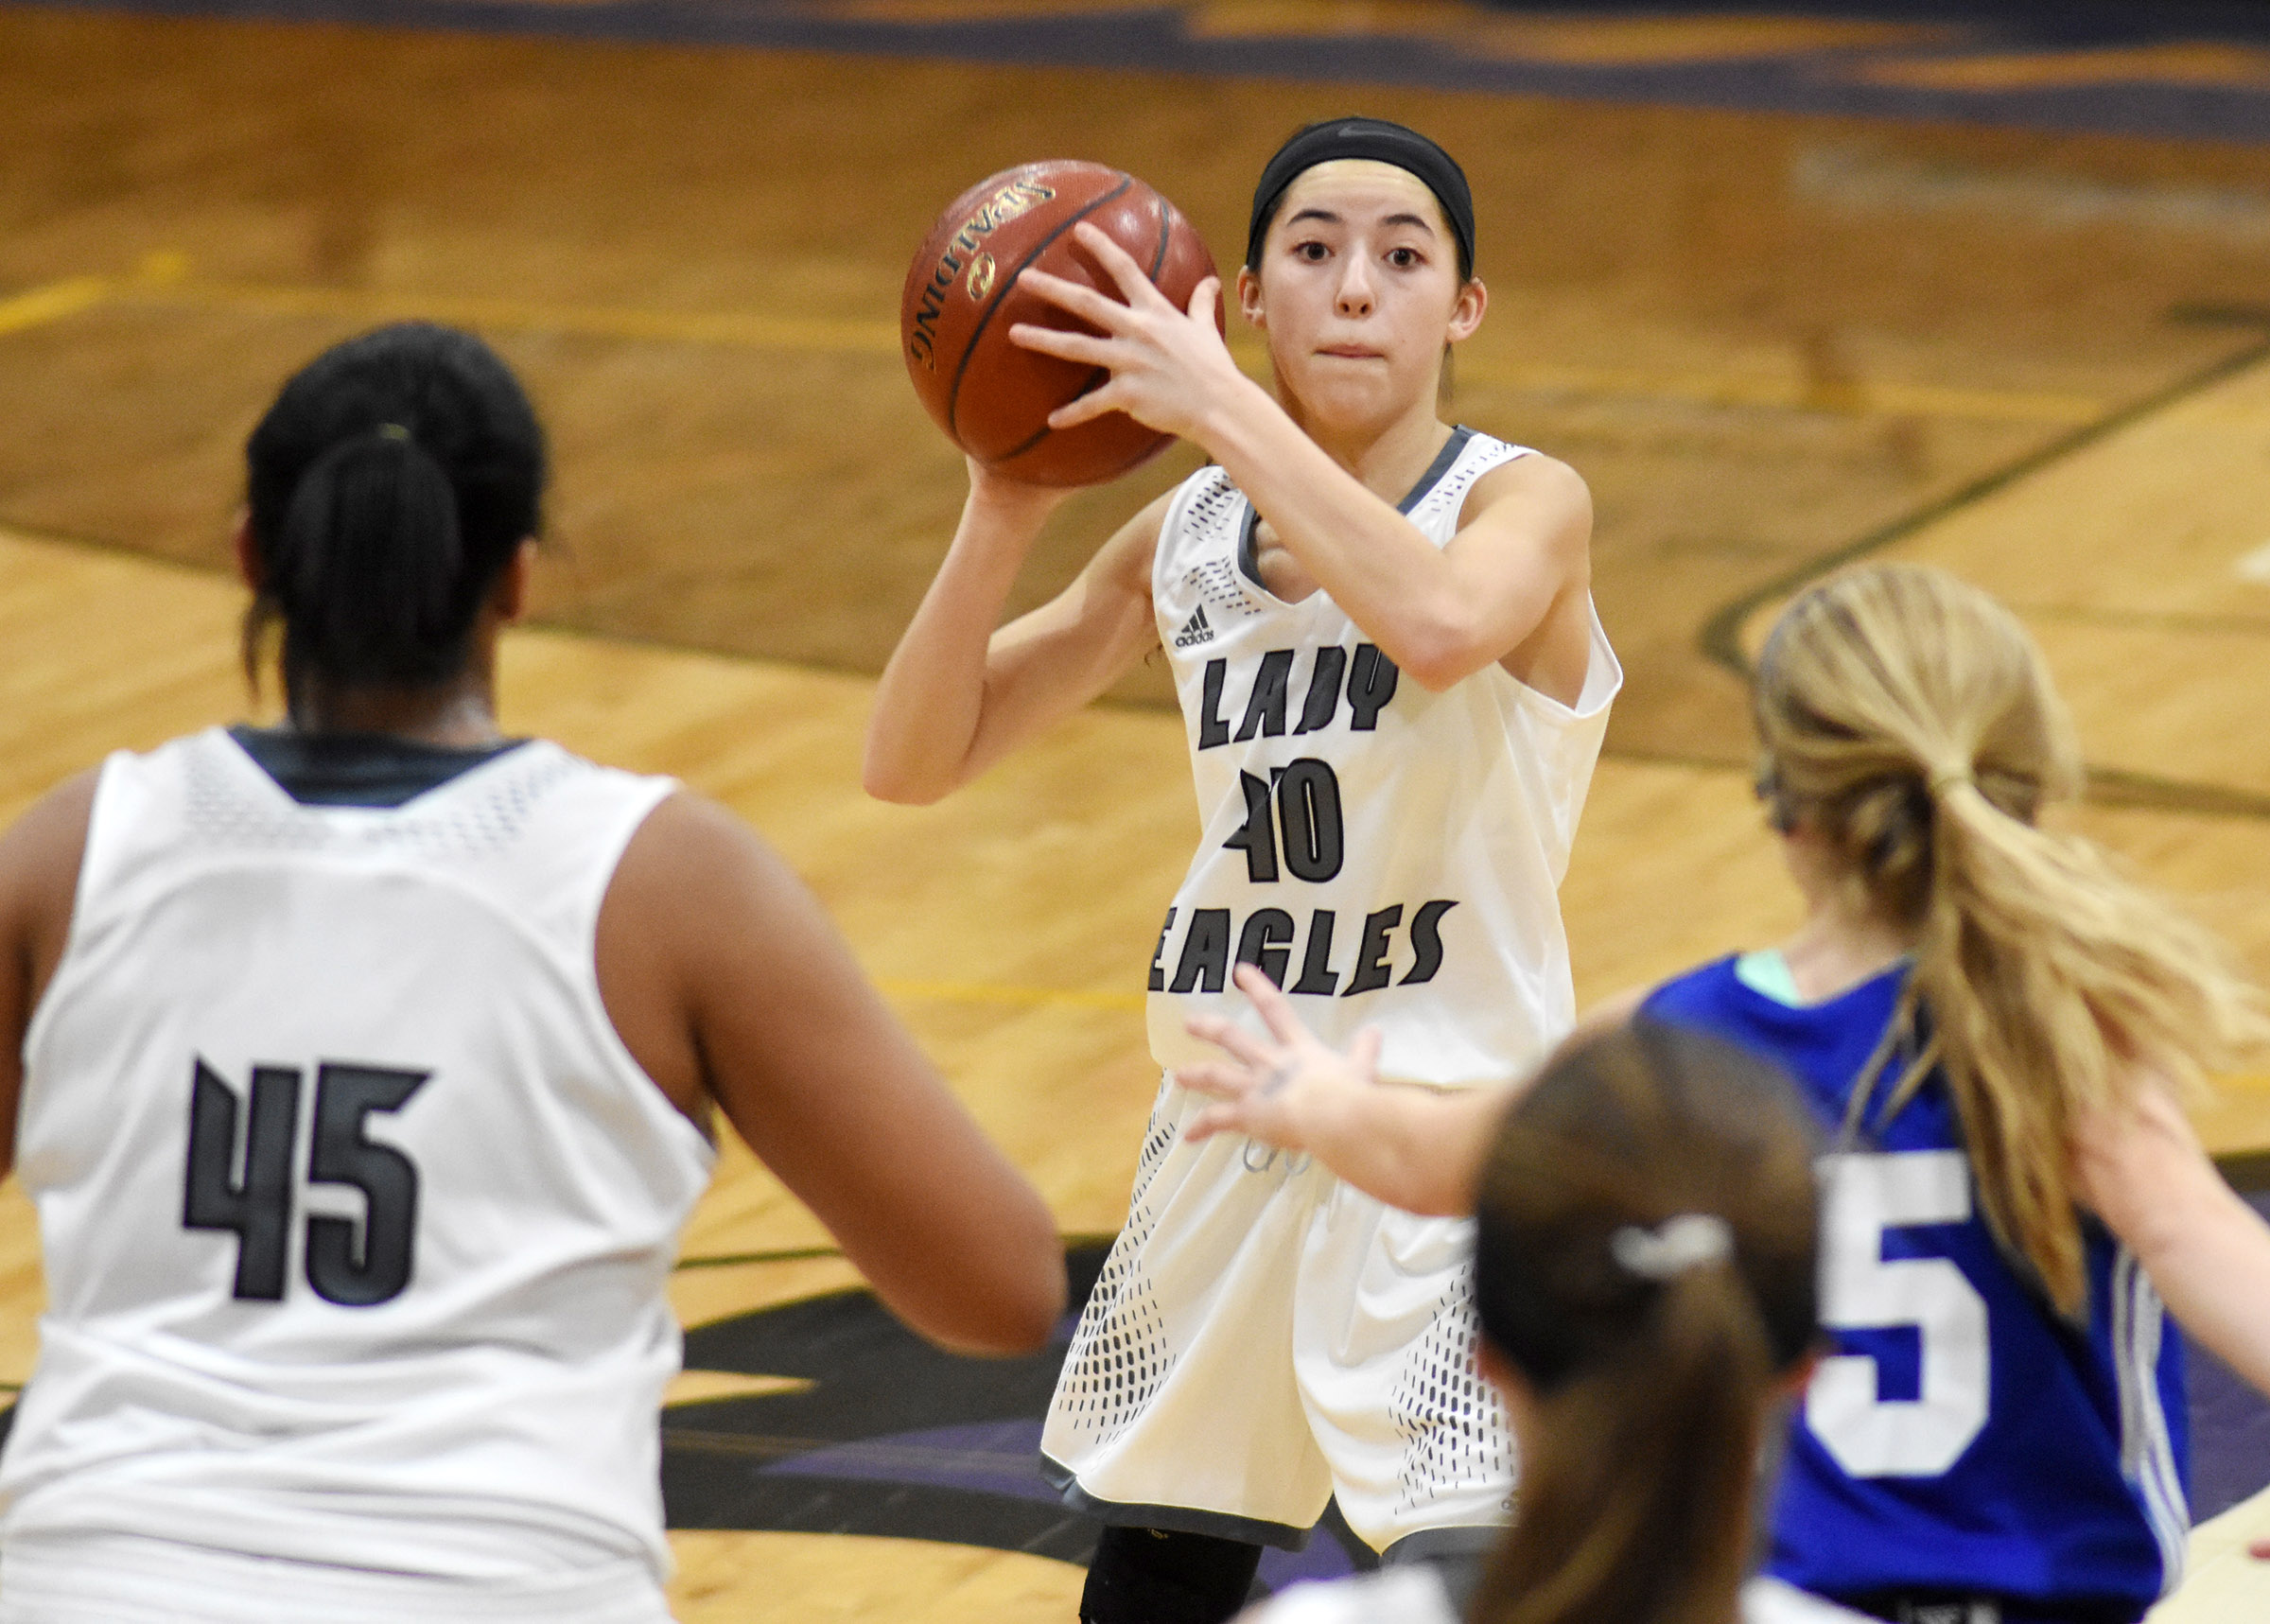 Campbellsville Middle School eighth-grader Kaylyn Smith looks to pass.